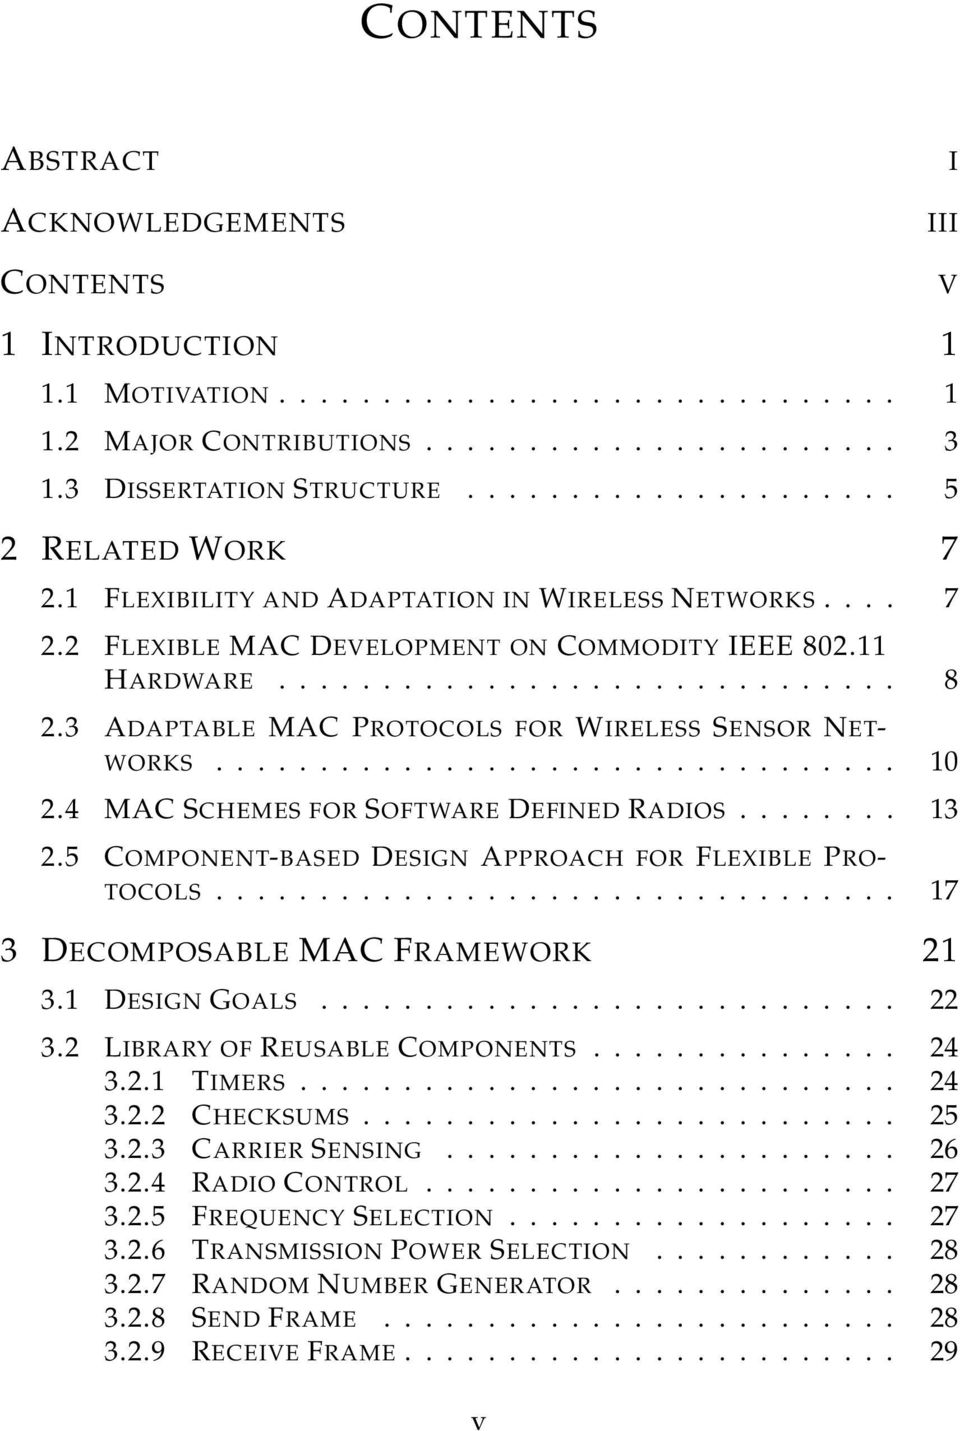 3 ADAPTABLE MAC PROTOCOLS FOR WIRELESS SENSOR NET- WORKS................................. 10 2.4 MAC SCHEMES FOR SOFTWARE DEFINED RADIOS........ 13 2.